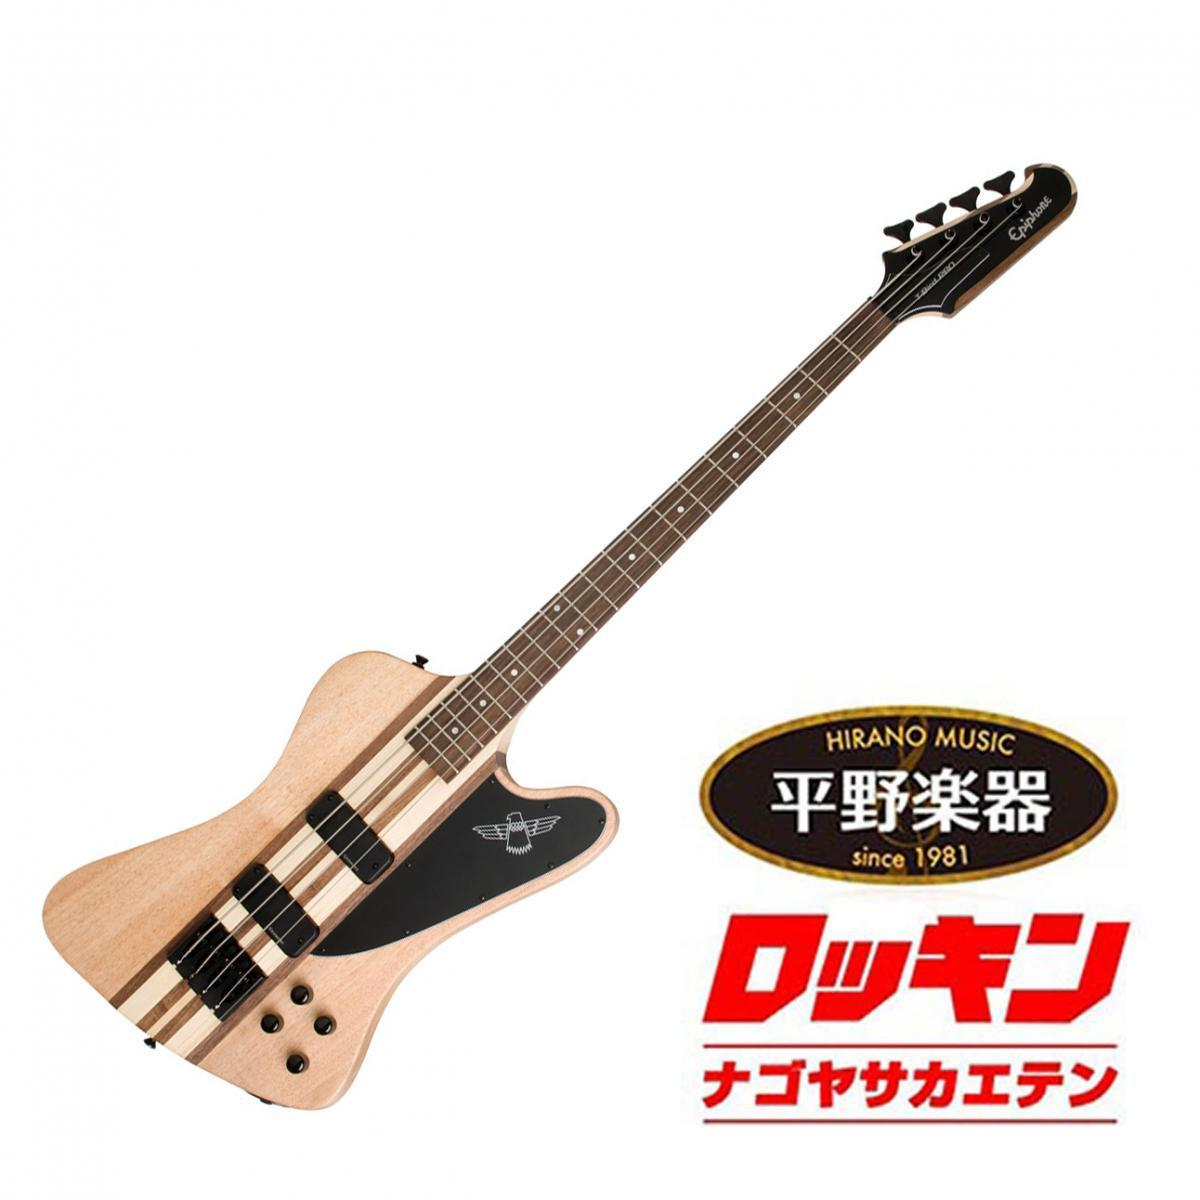 Epiphone ☆ Limited bargain basement !! ★ Thunderbird Pro-IV Bass Natural Oil